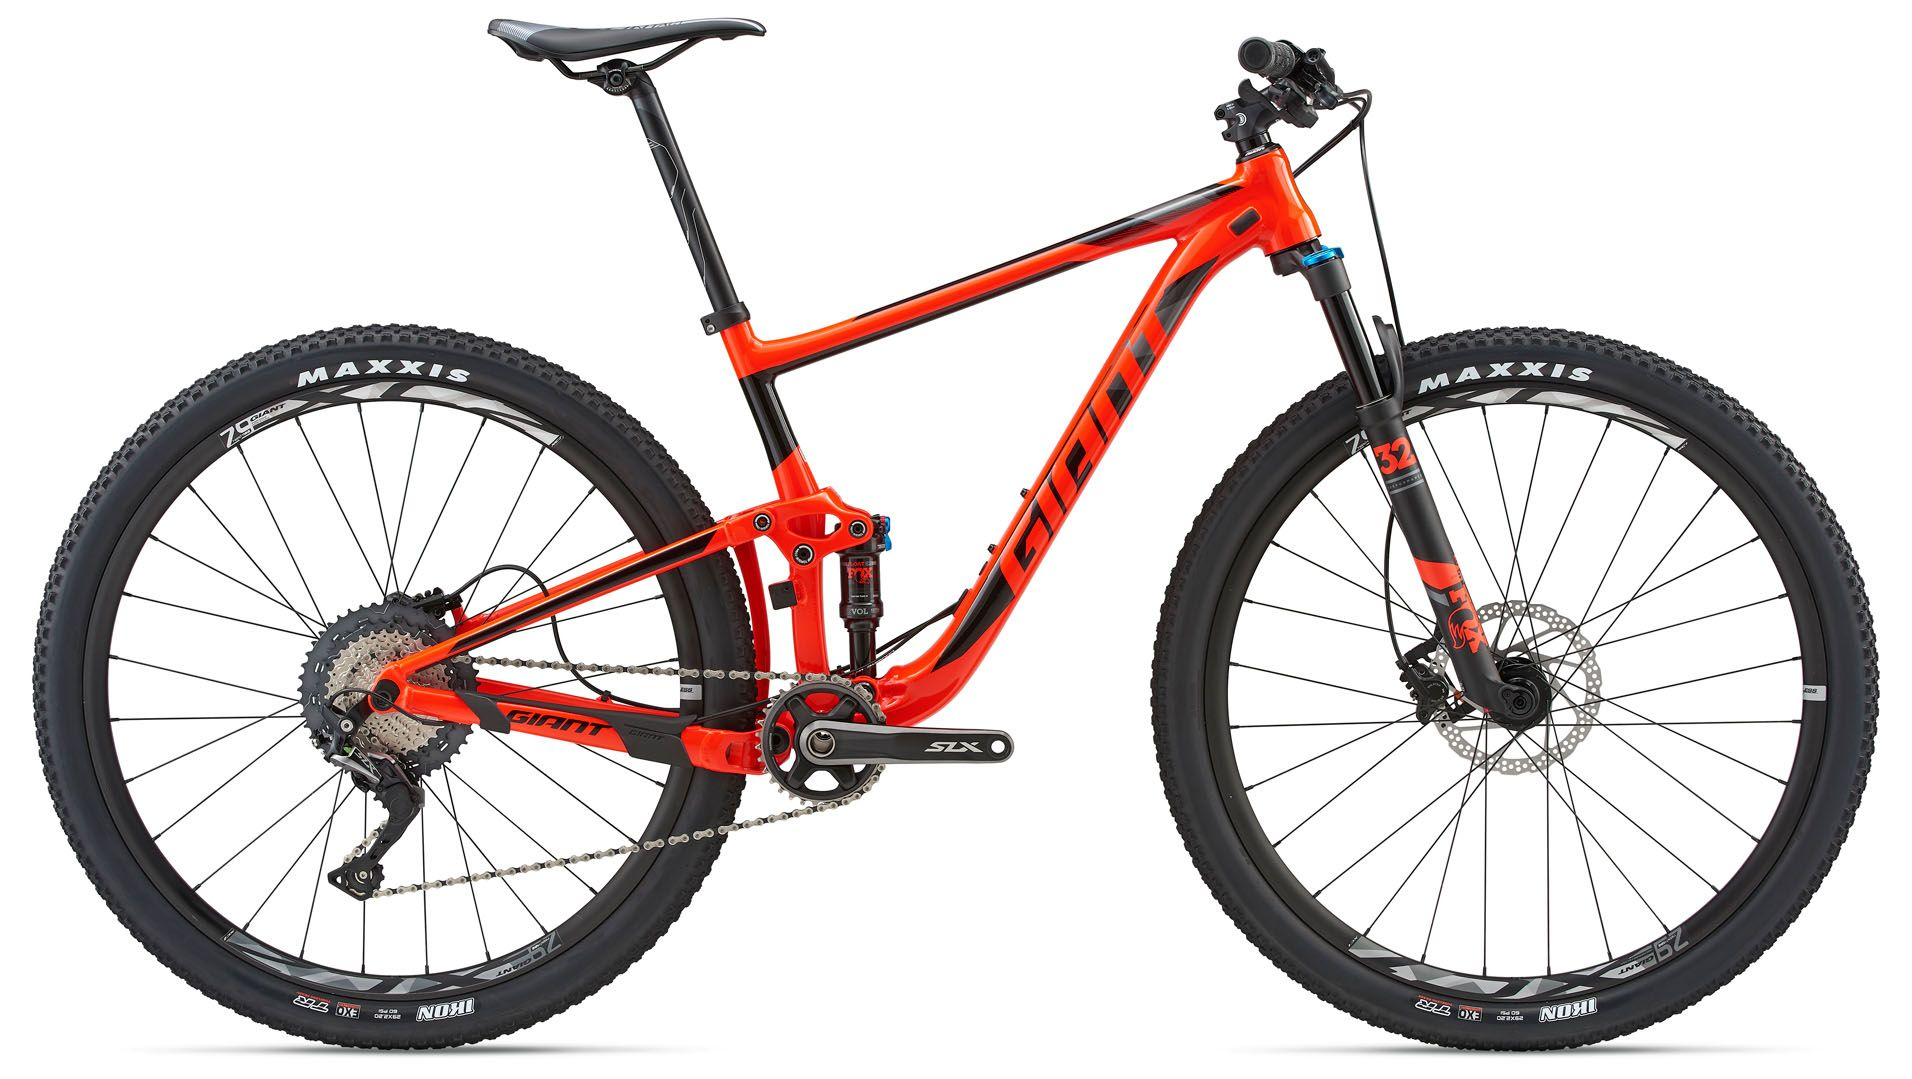 Велосипед Giant Anthem 29er 2 2018 велосипед giant anthem advanced 27 5 2 2016